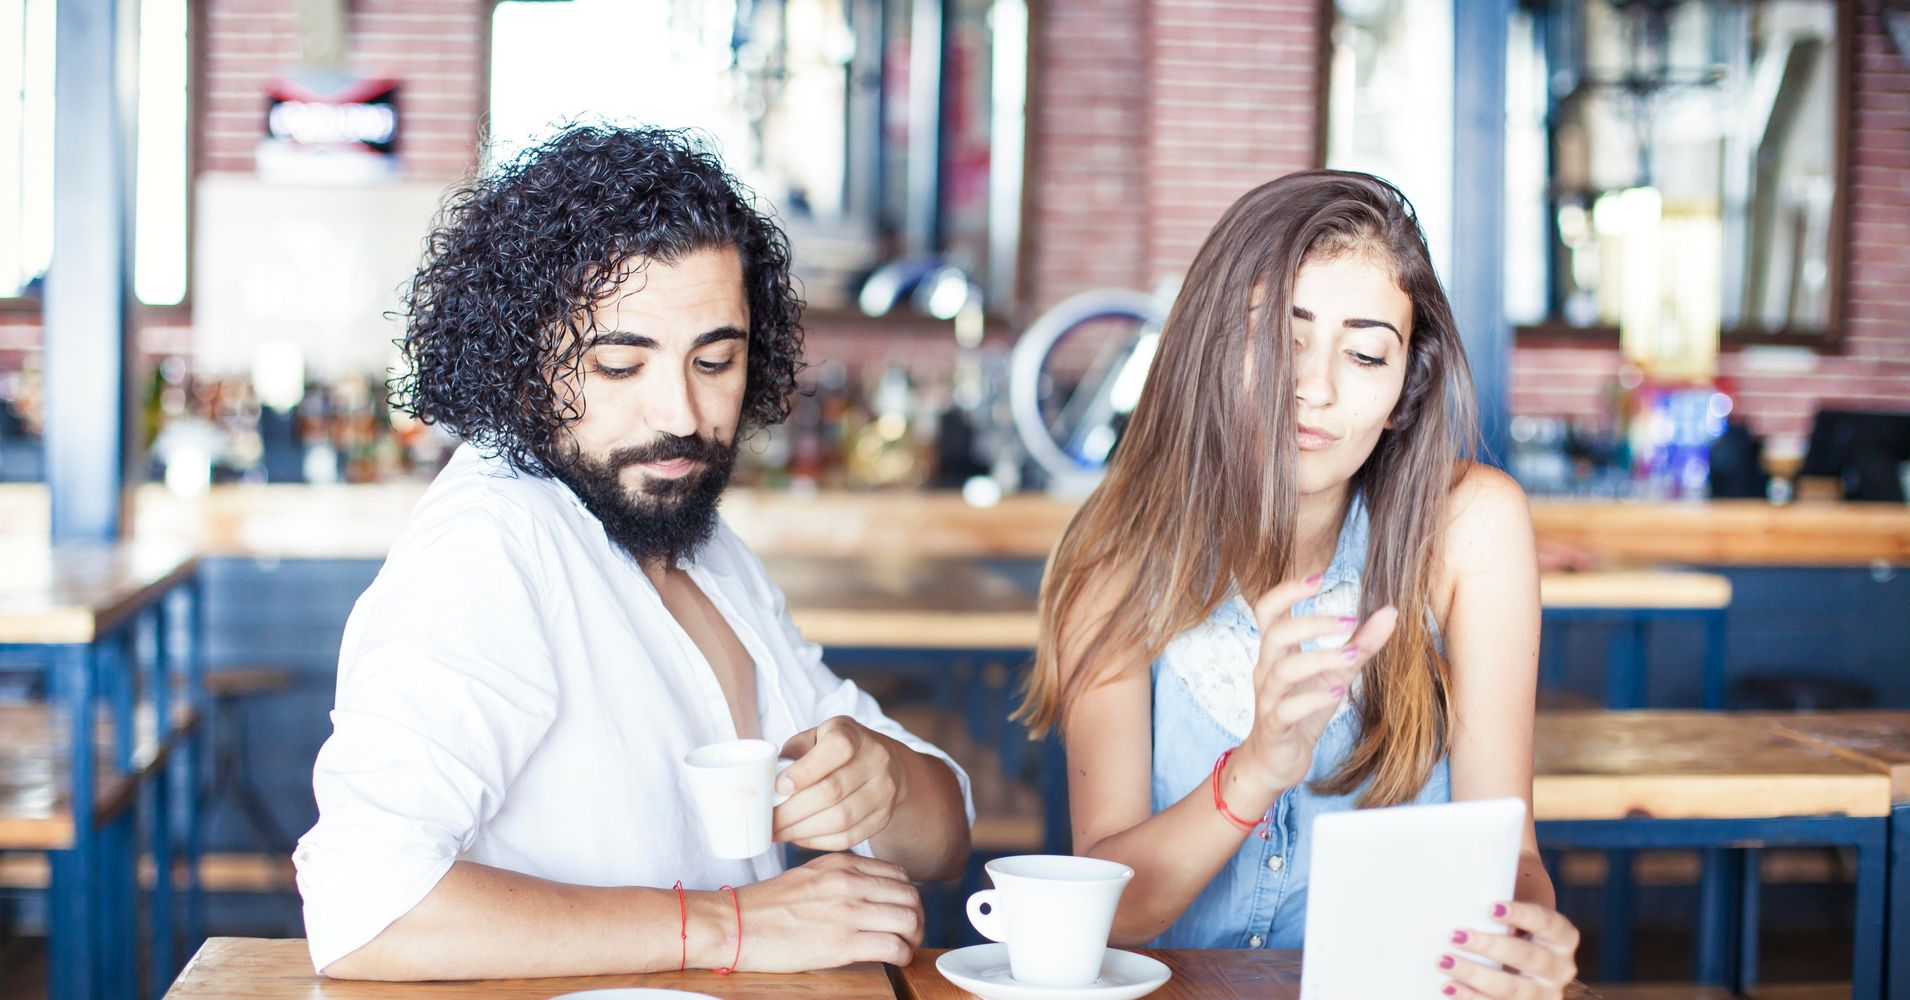 Why modern dating can be so hard